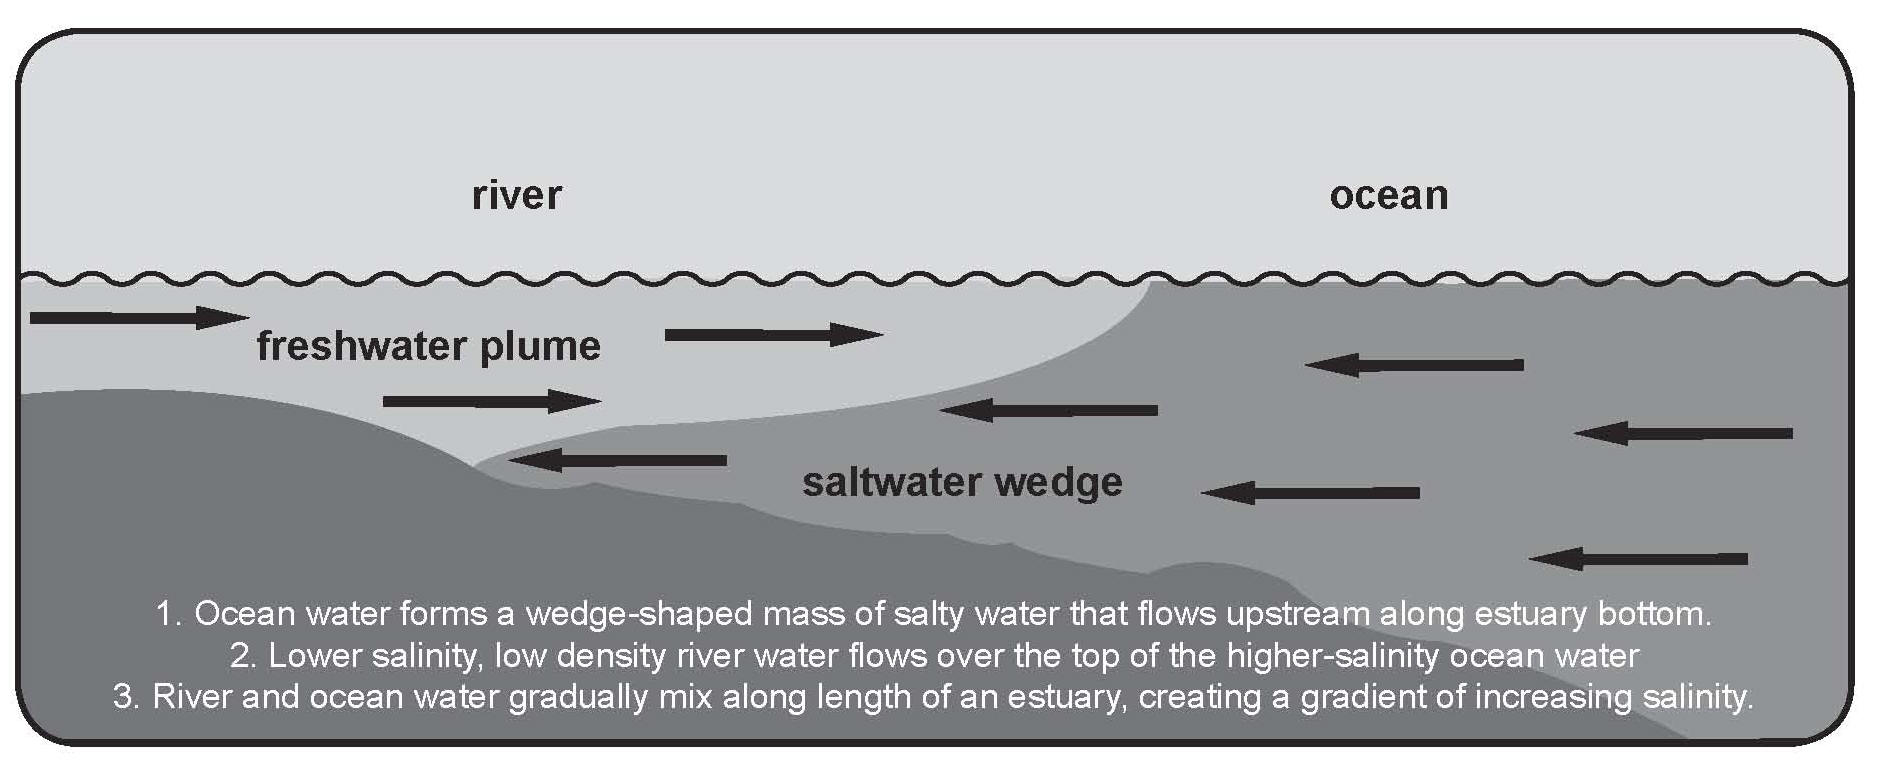 Illustrative example of a salt wedge phenomenon